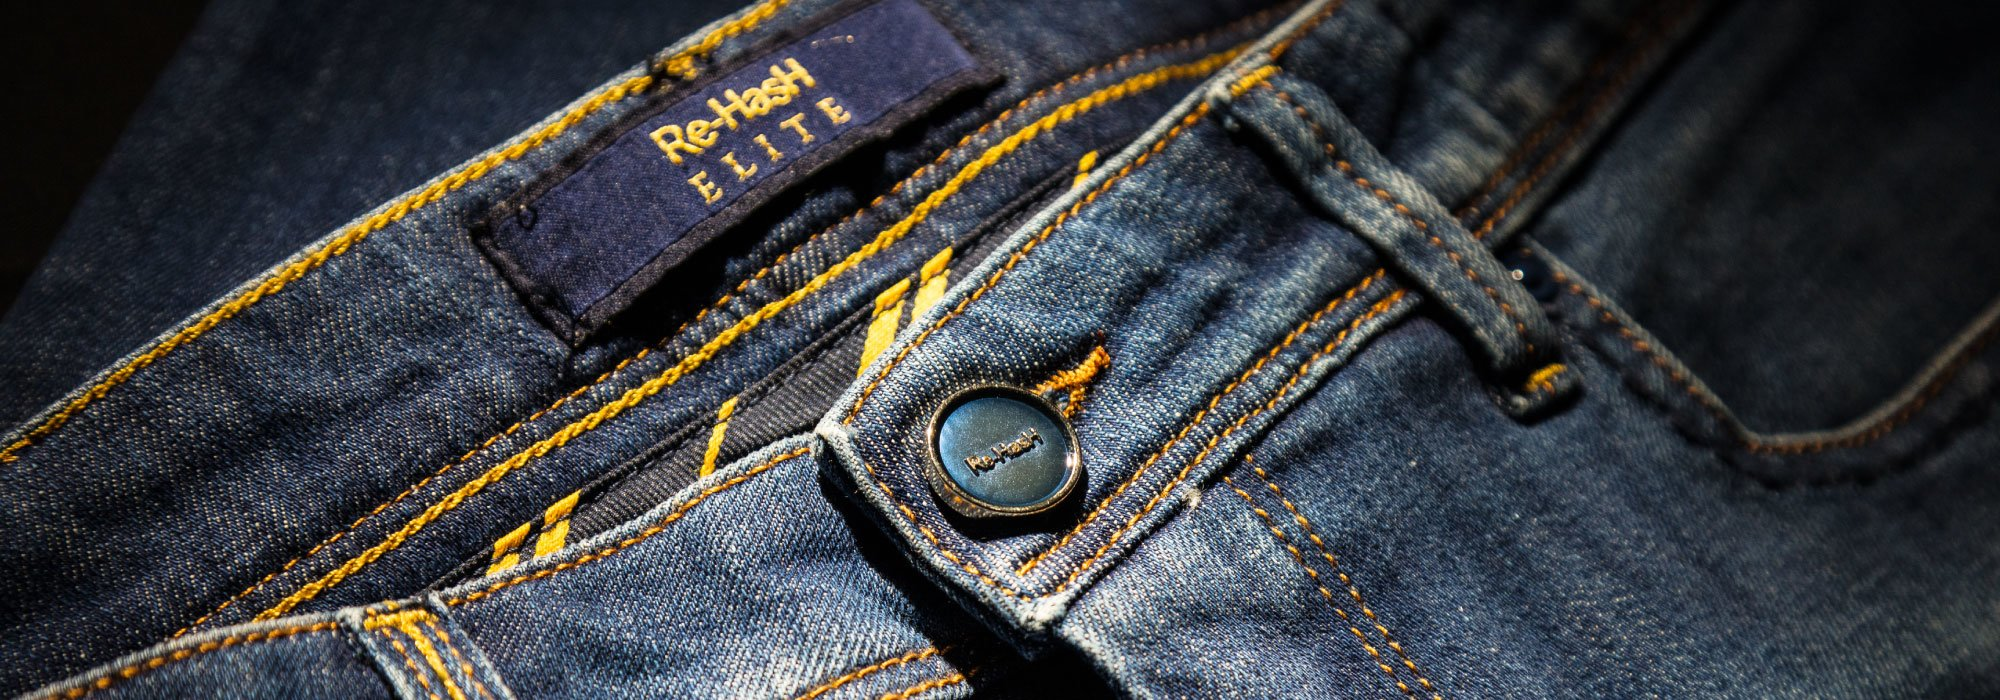 ELITE CAPSULE - Exclusive capsule realized to the finest Denim fabrics.